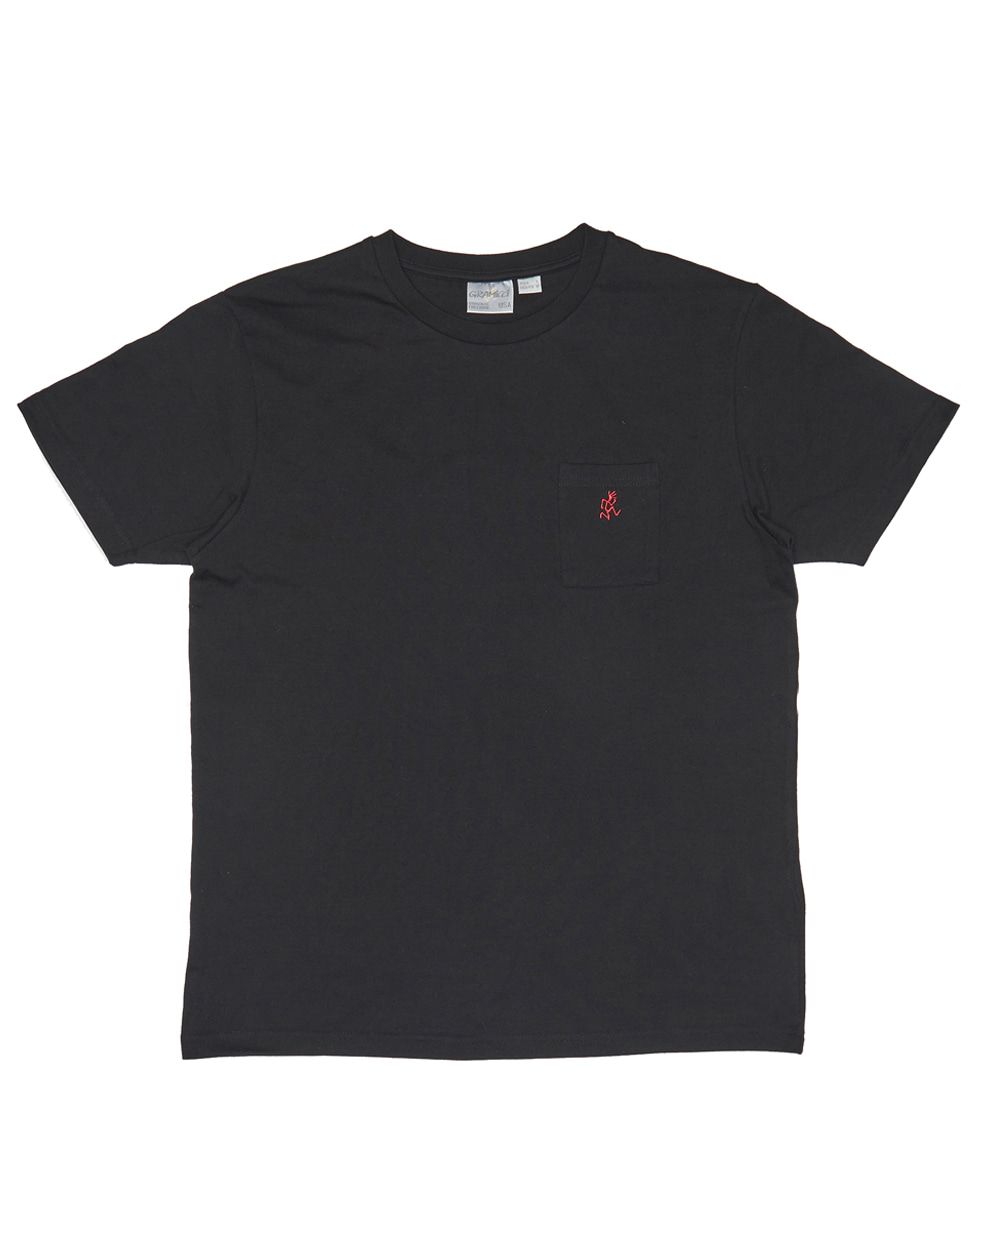 그라미치 ONE POINT TEE (Black)